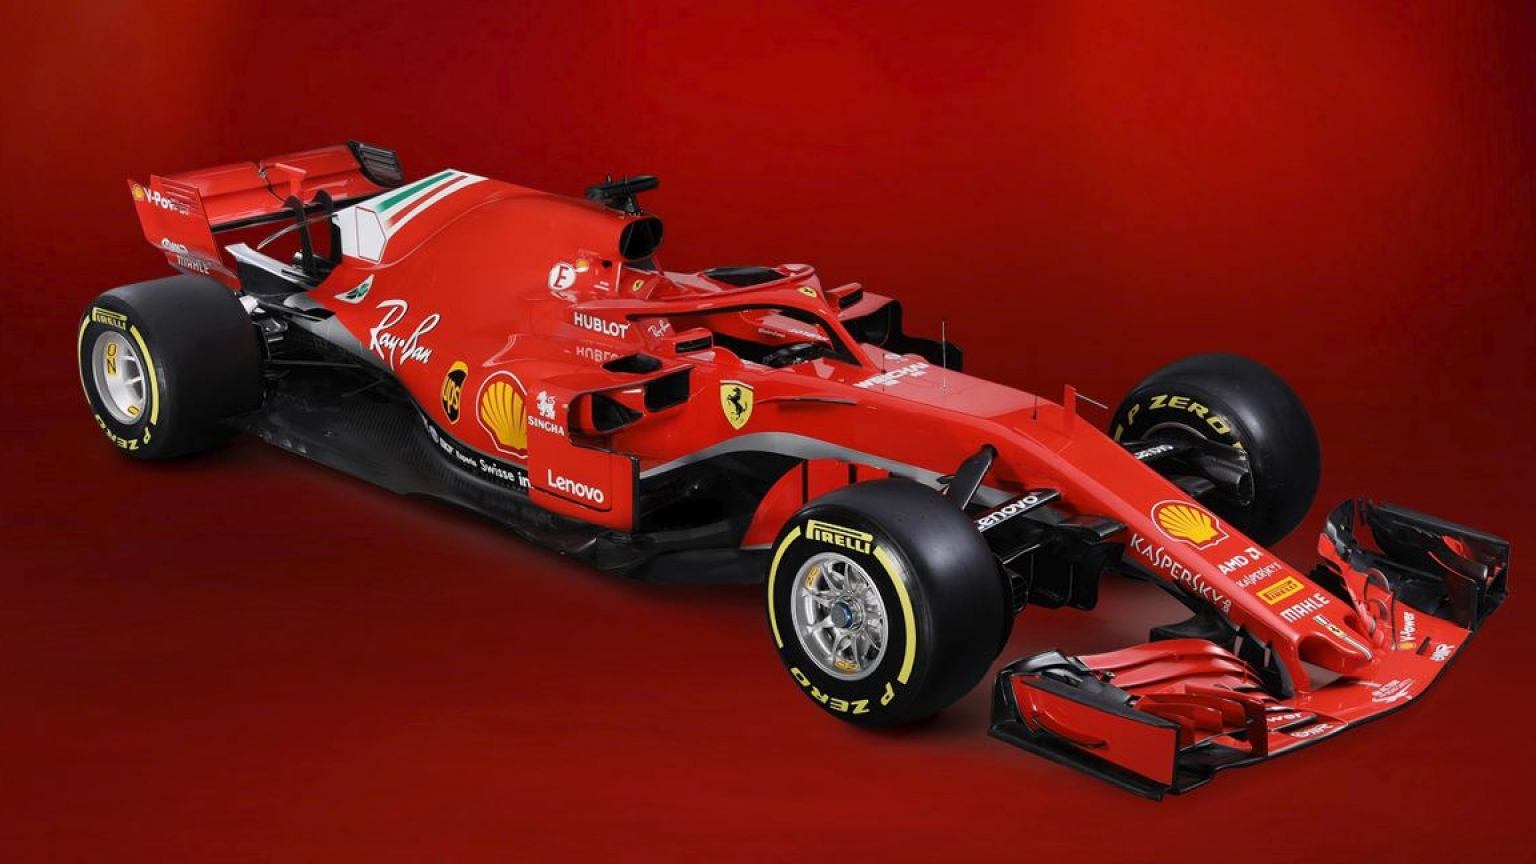 Ferrari S Sebastian Vettel Unhappy Grid Boys Replaced Grid